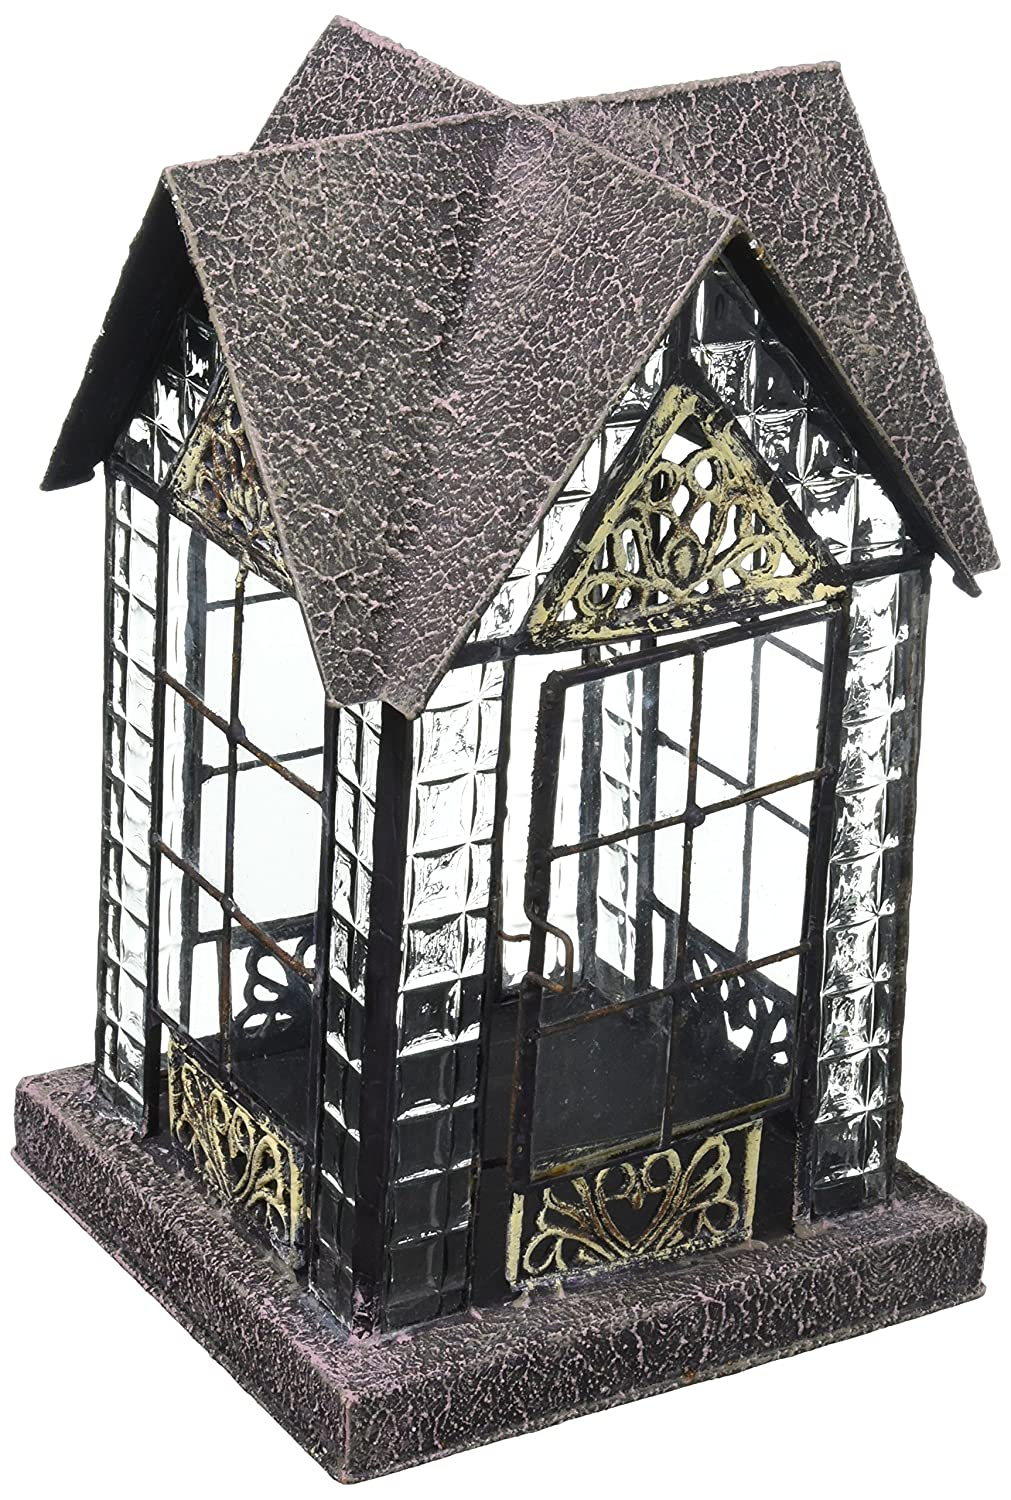 Handcrafted English Devonshire Lantern Tea Light Candle Holder - ChristmasTablescapeDecor.com